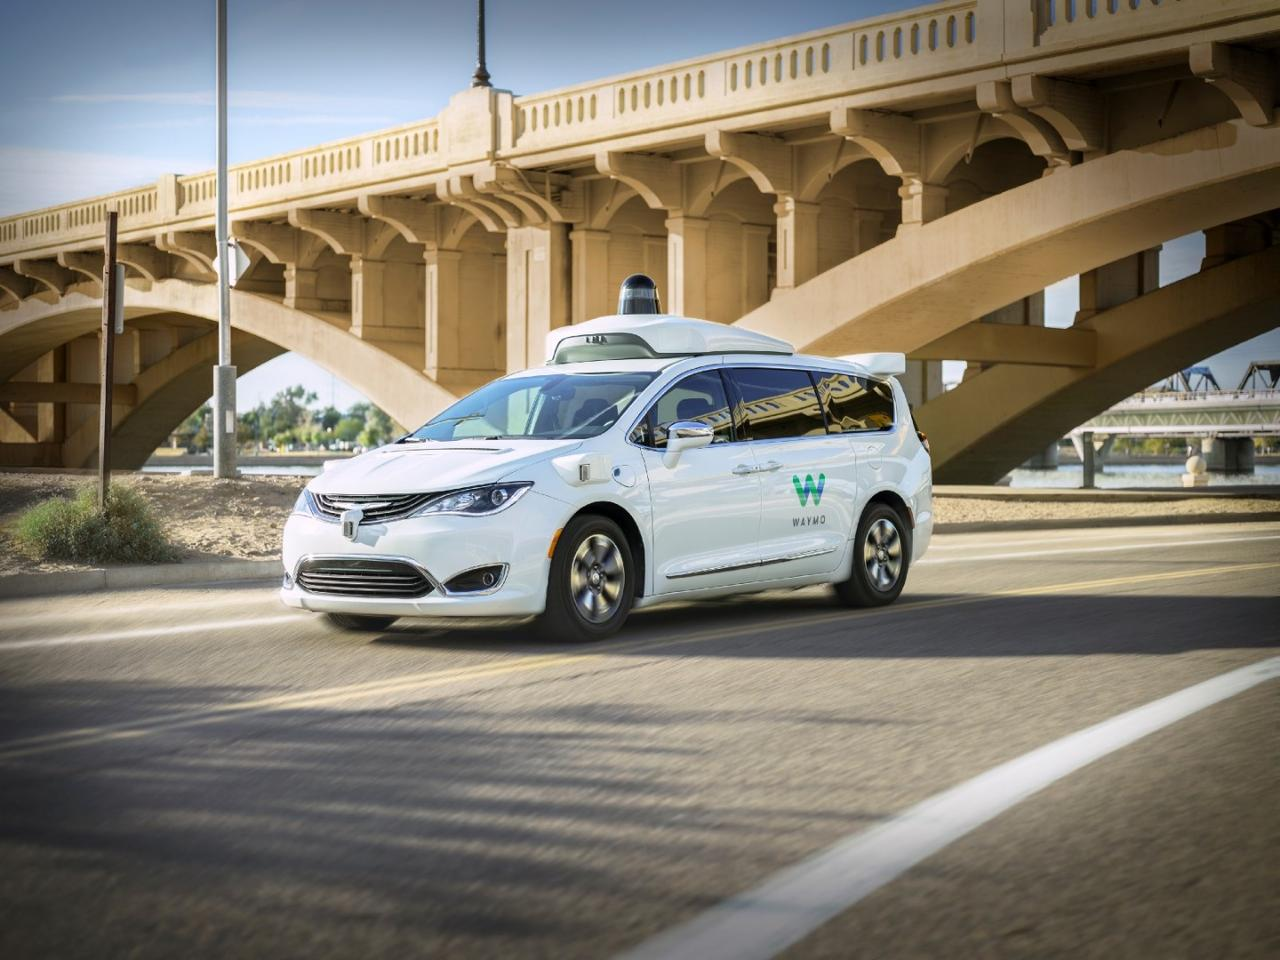 Waymo One will initially be available only to members of the early rider program in Phoenix